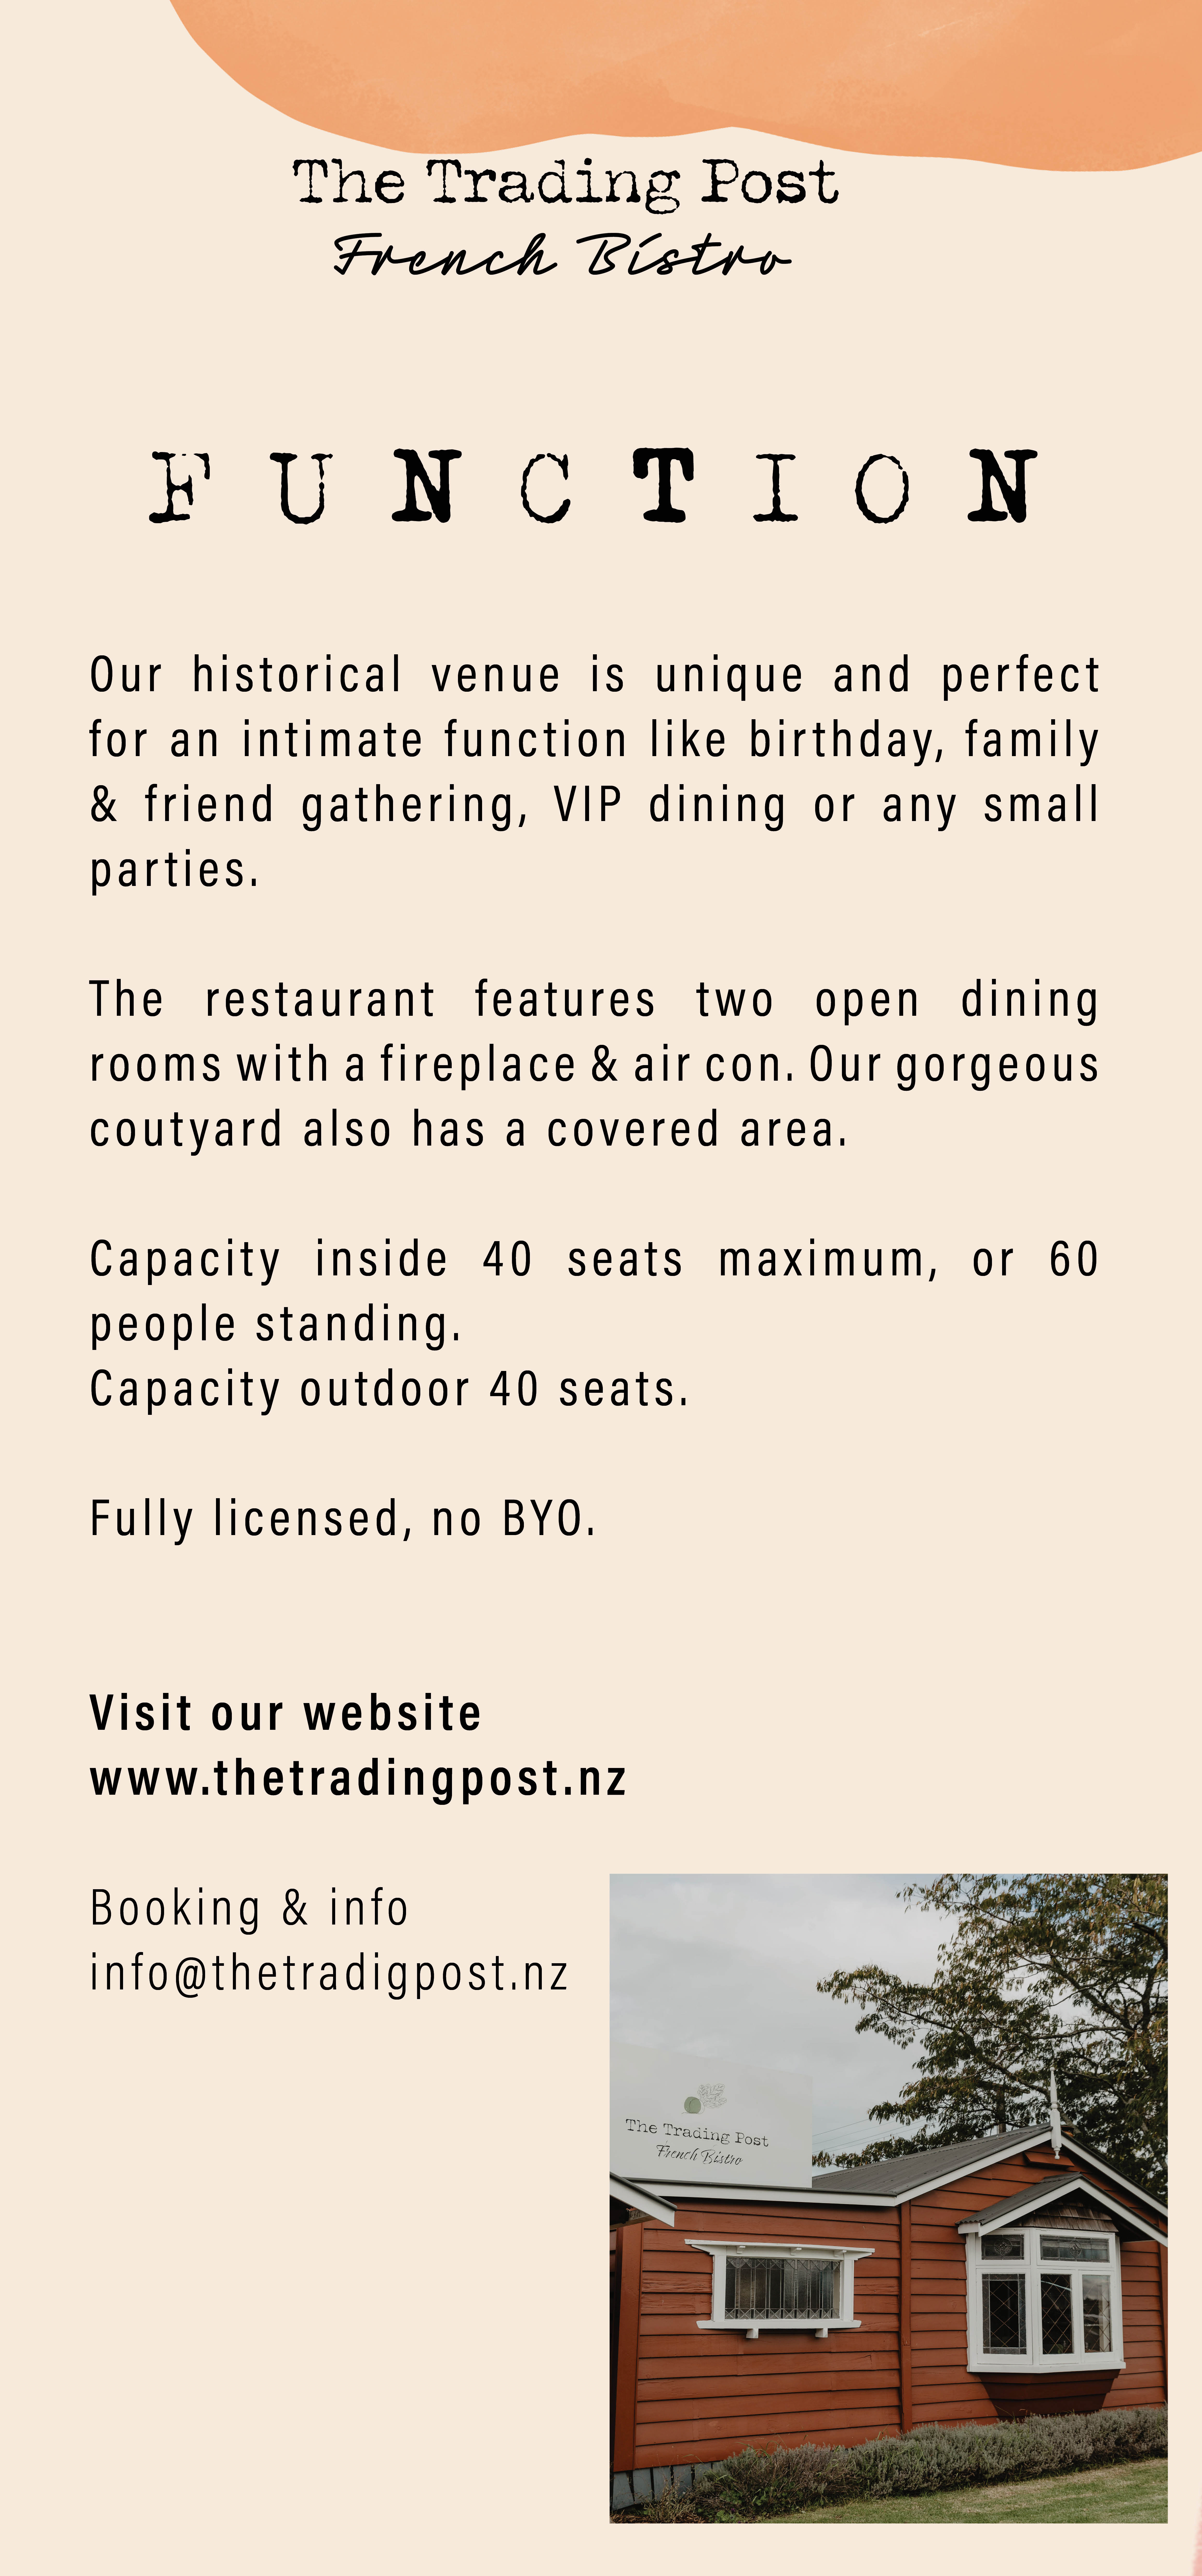 Function 2021 flyer The Trading Post French Bistro